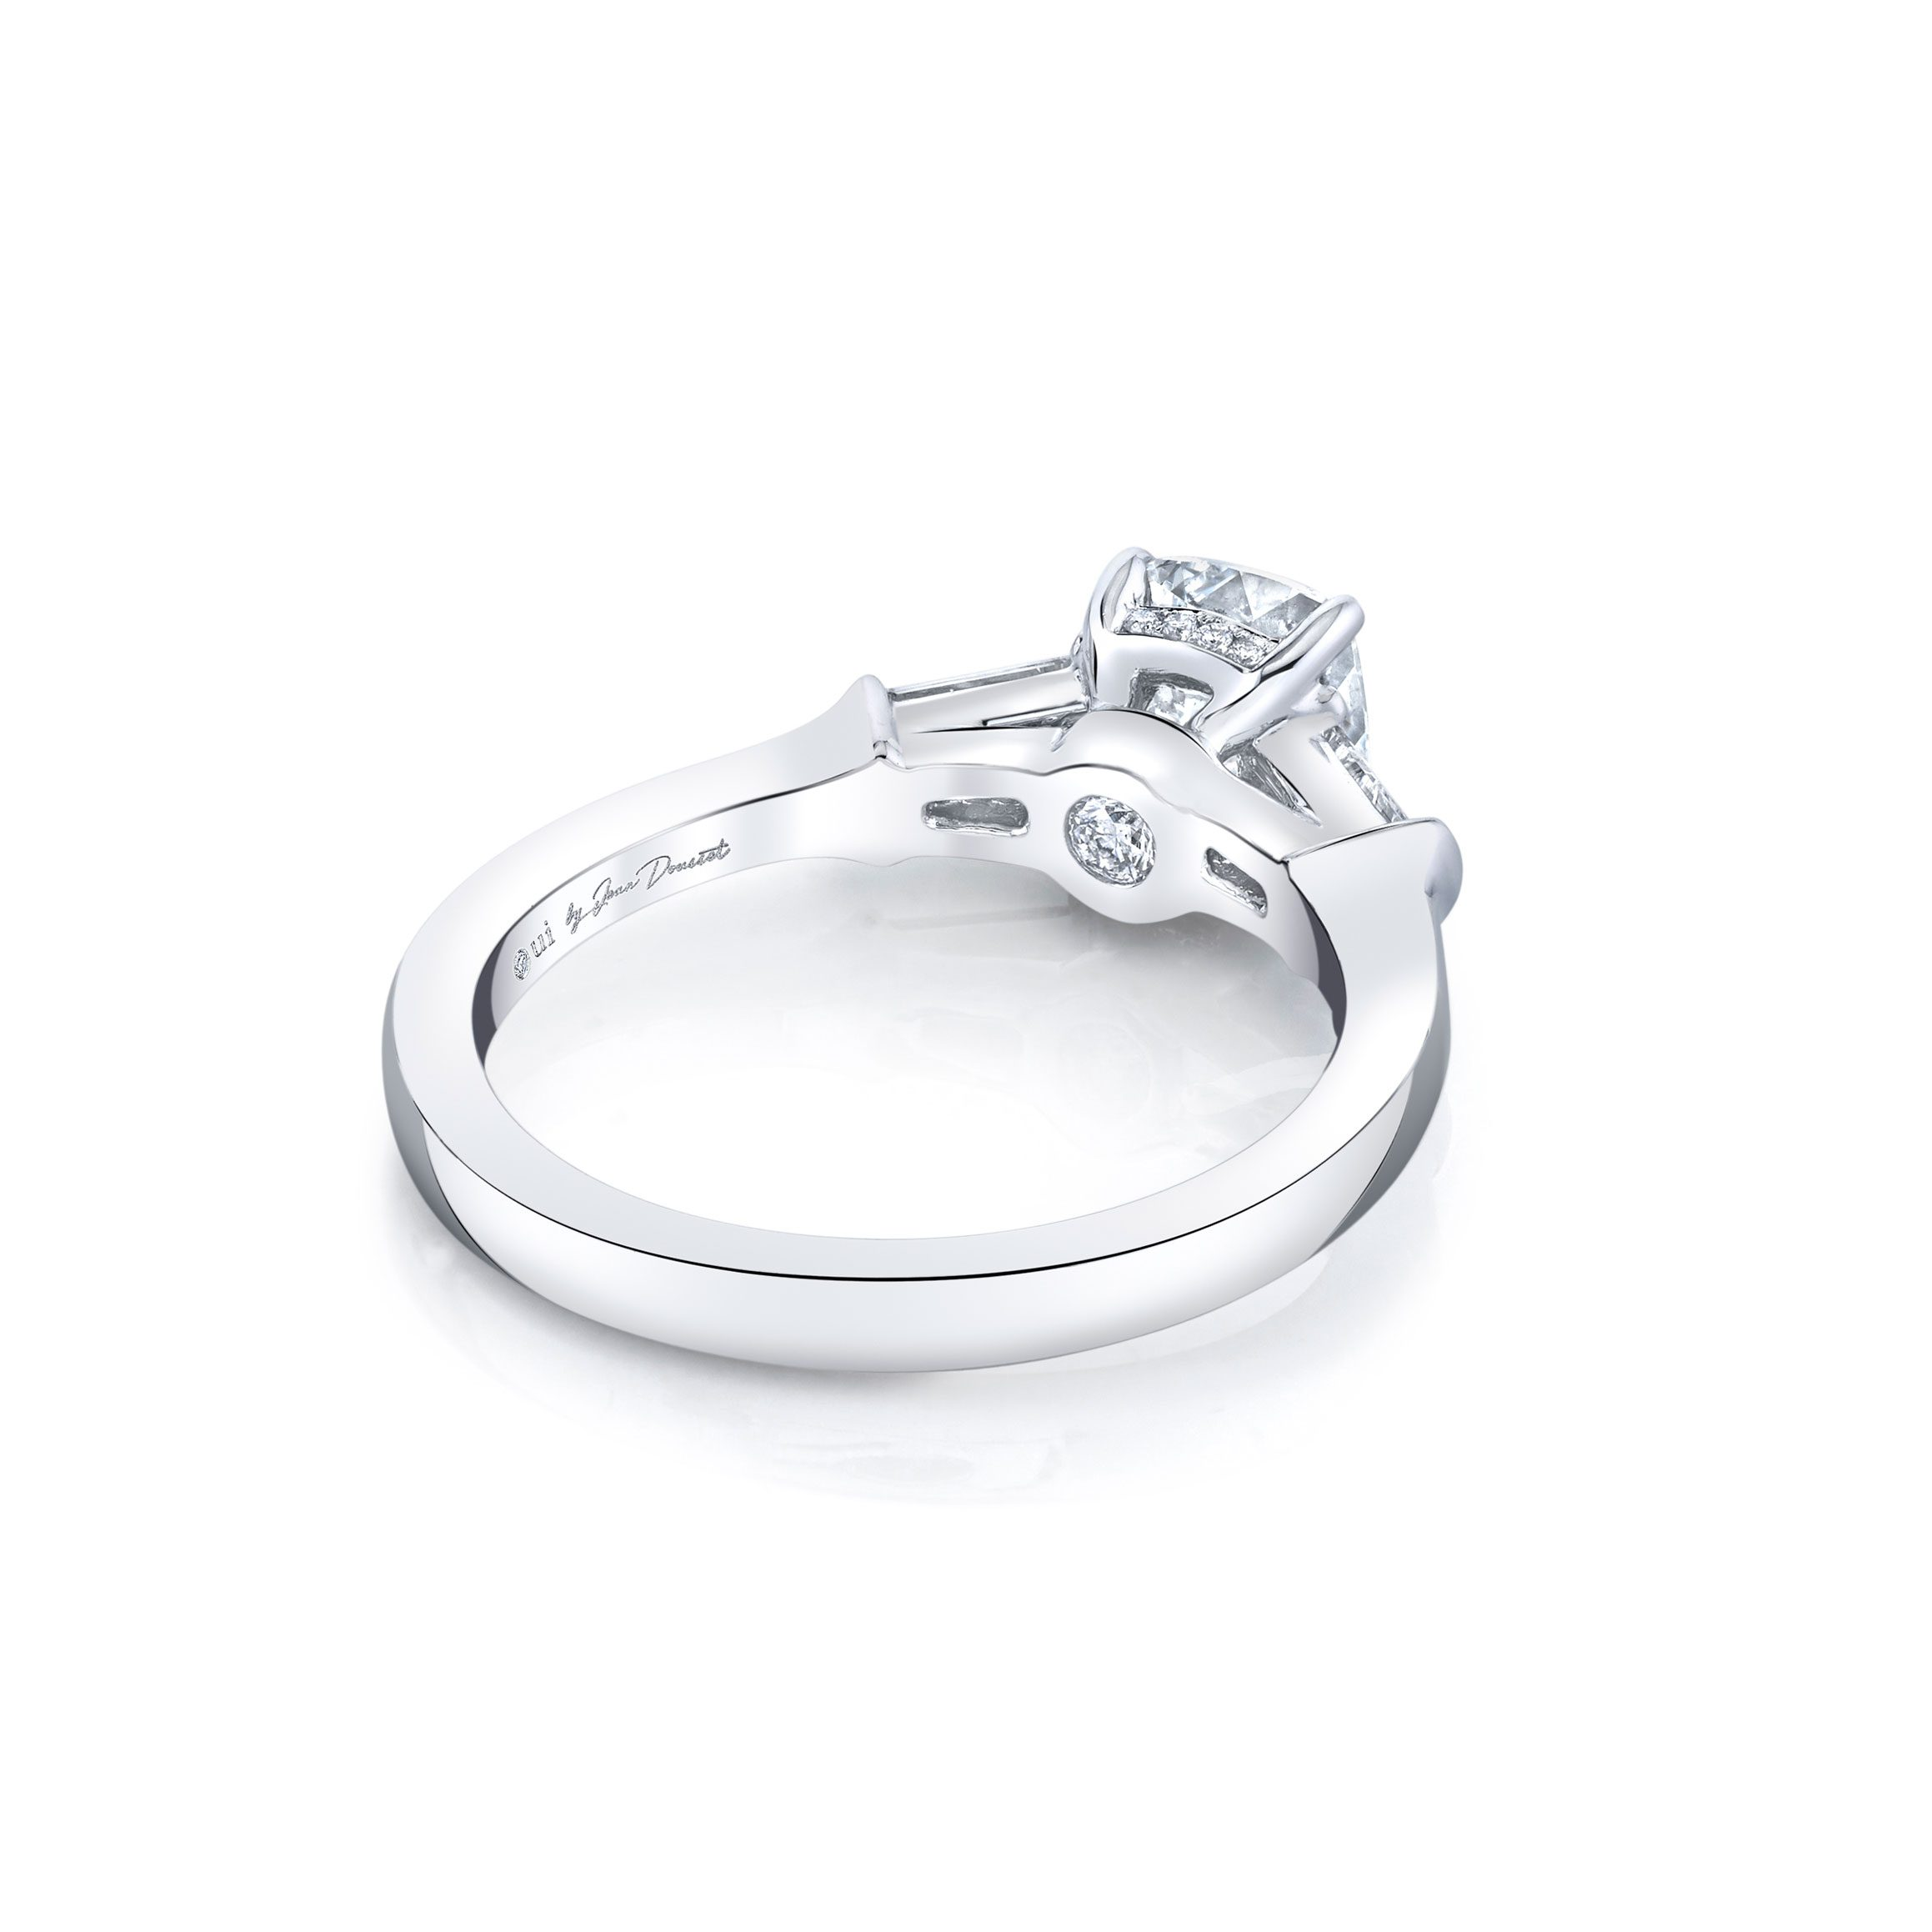 Claire Cushion Three Stone Engagement Ring with tapered baguette diamond side stones in 18k White Gold Back View by Oui by Jean Dousset